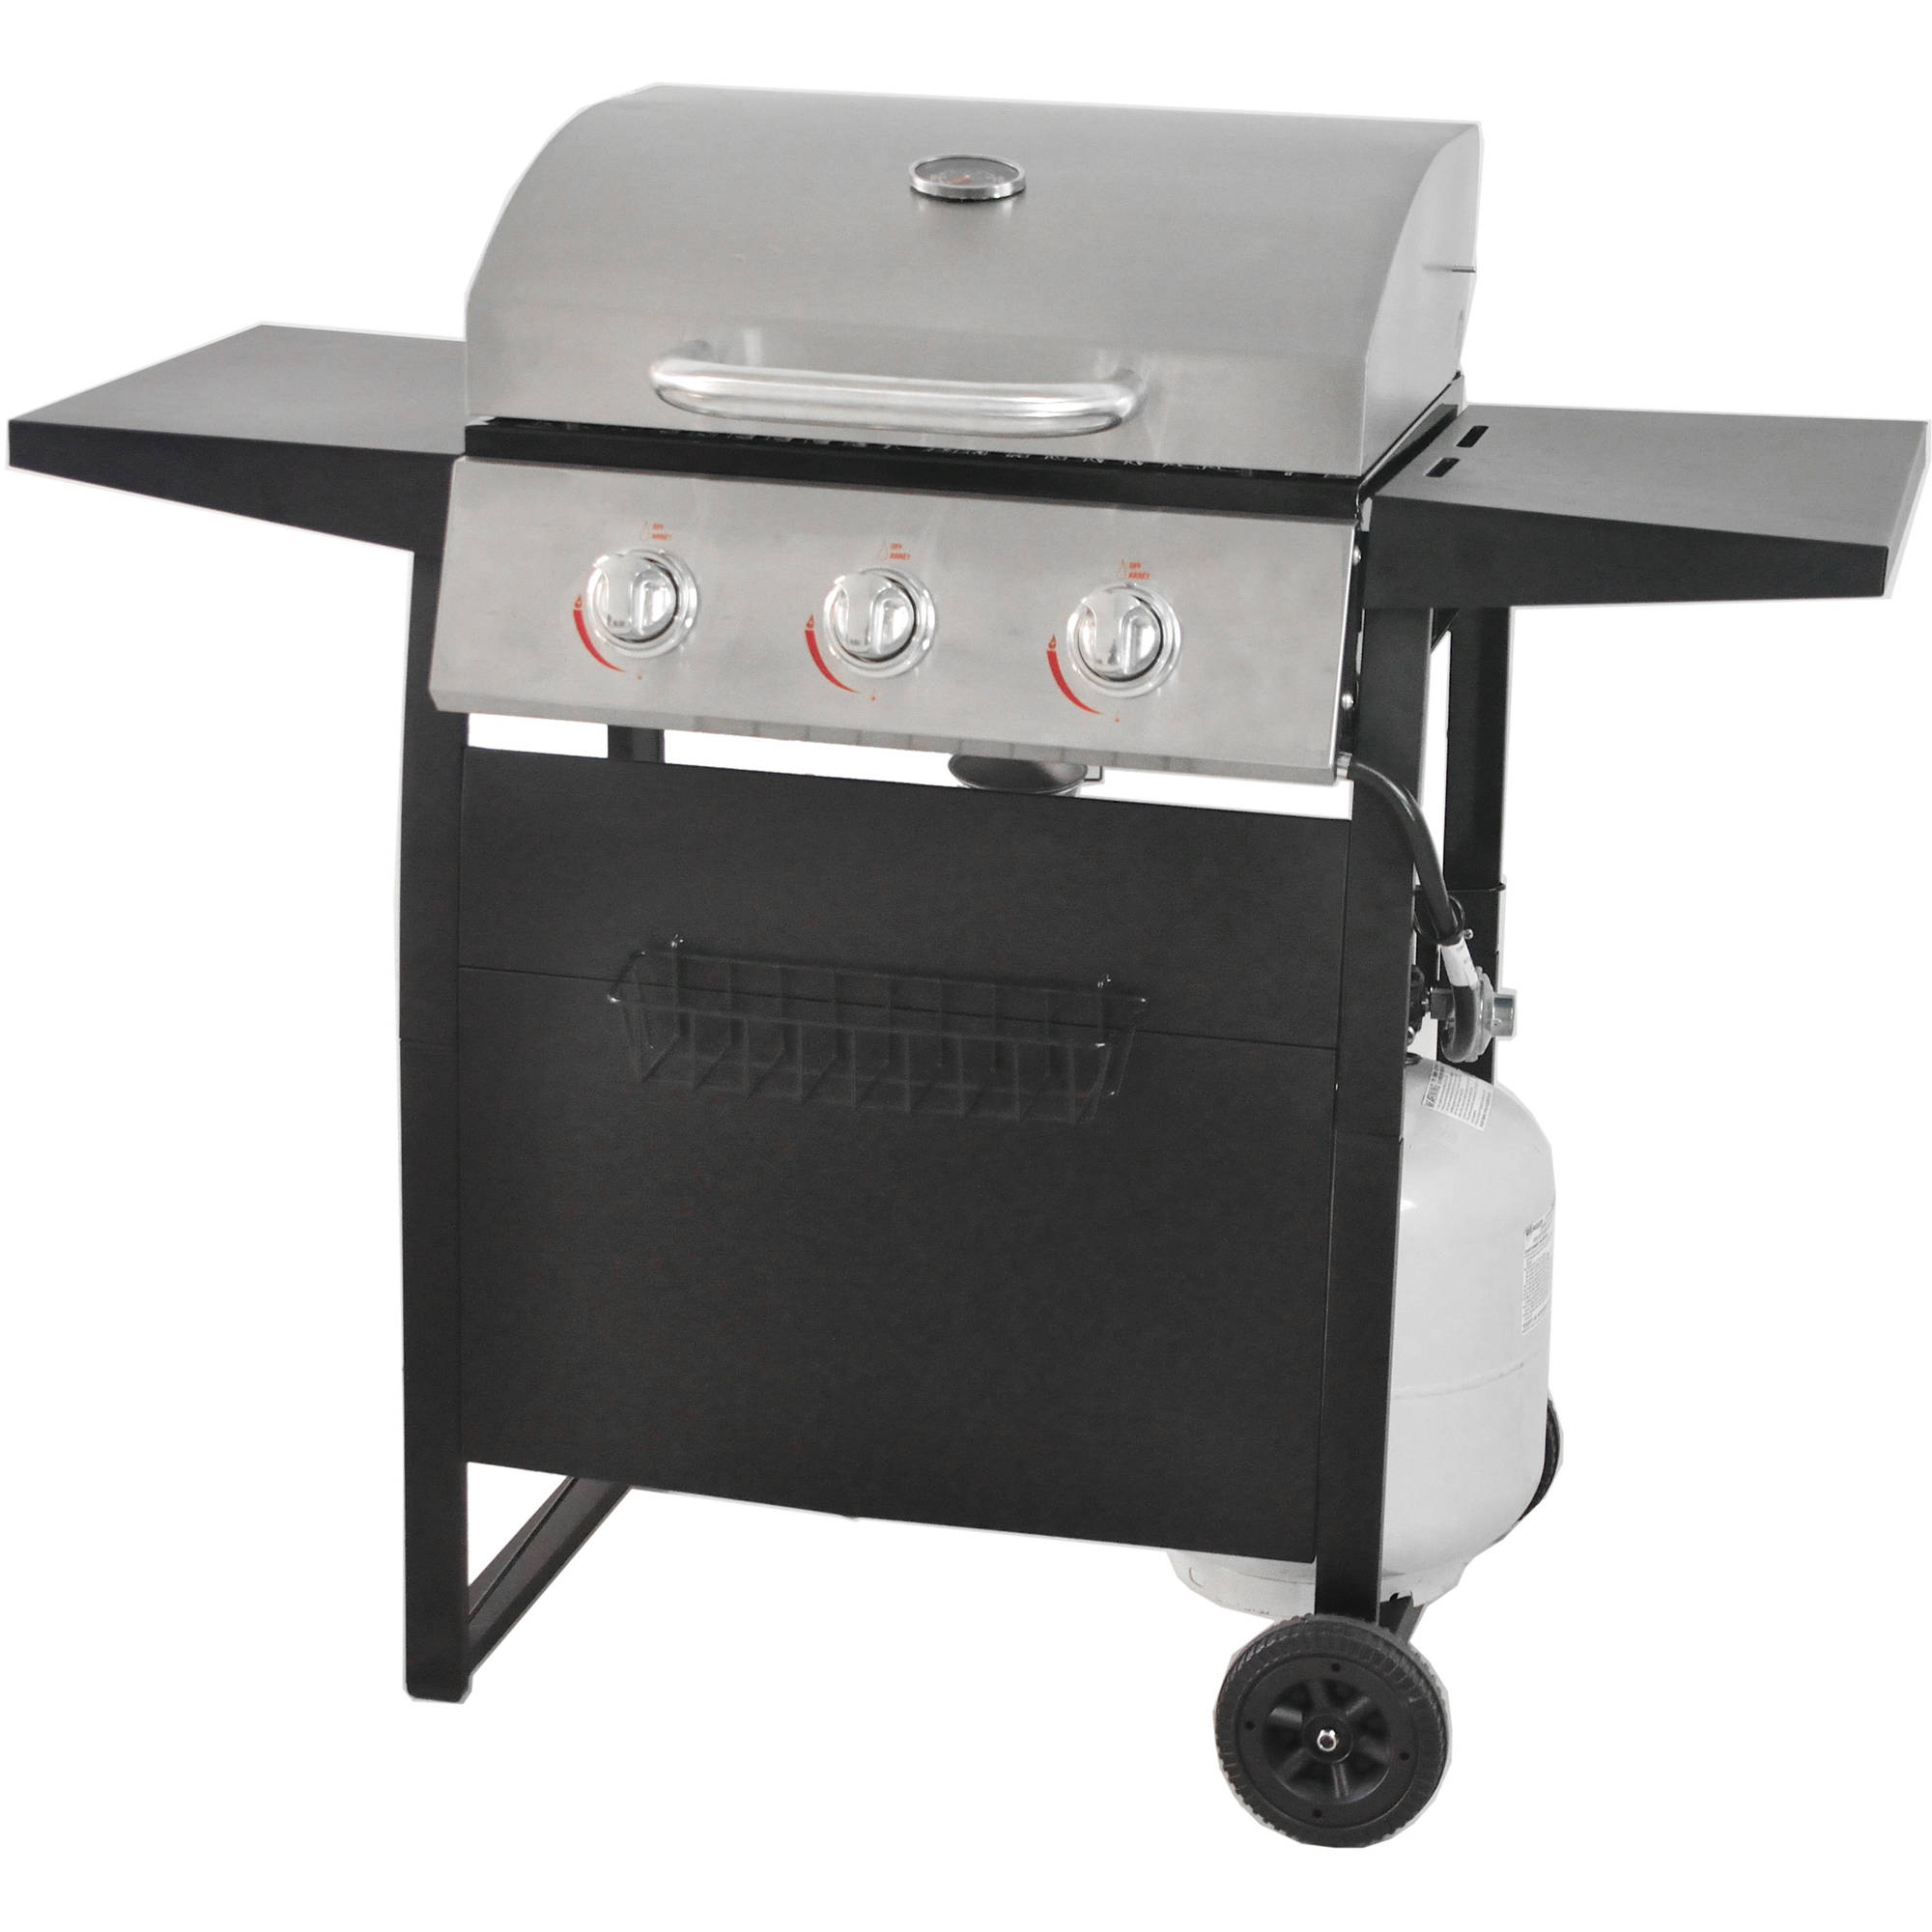 RevoAce 3-Burner Gas Grill with Stainless Steel